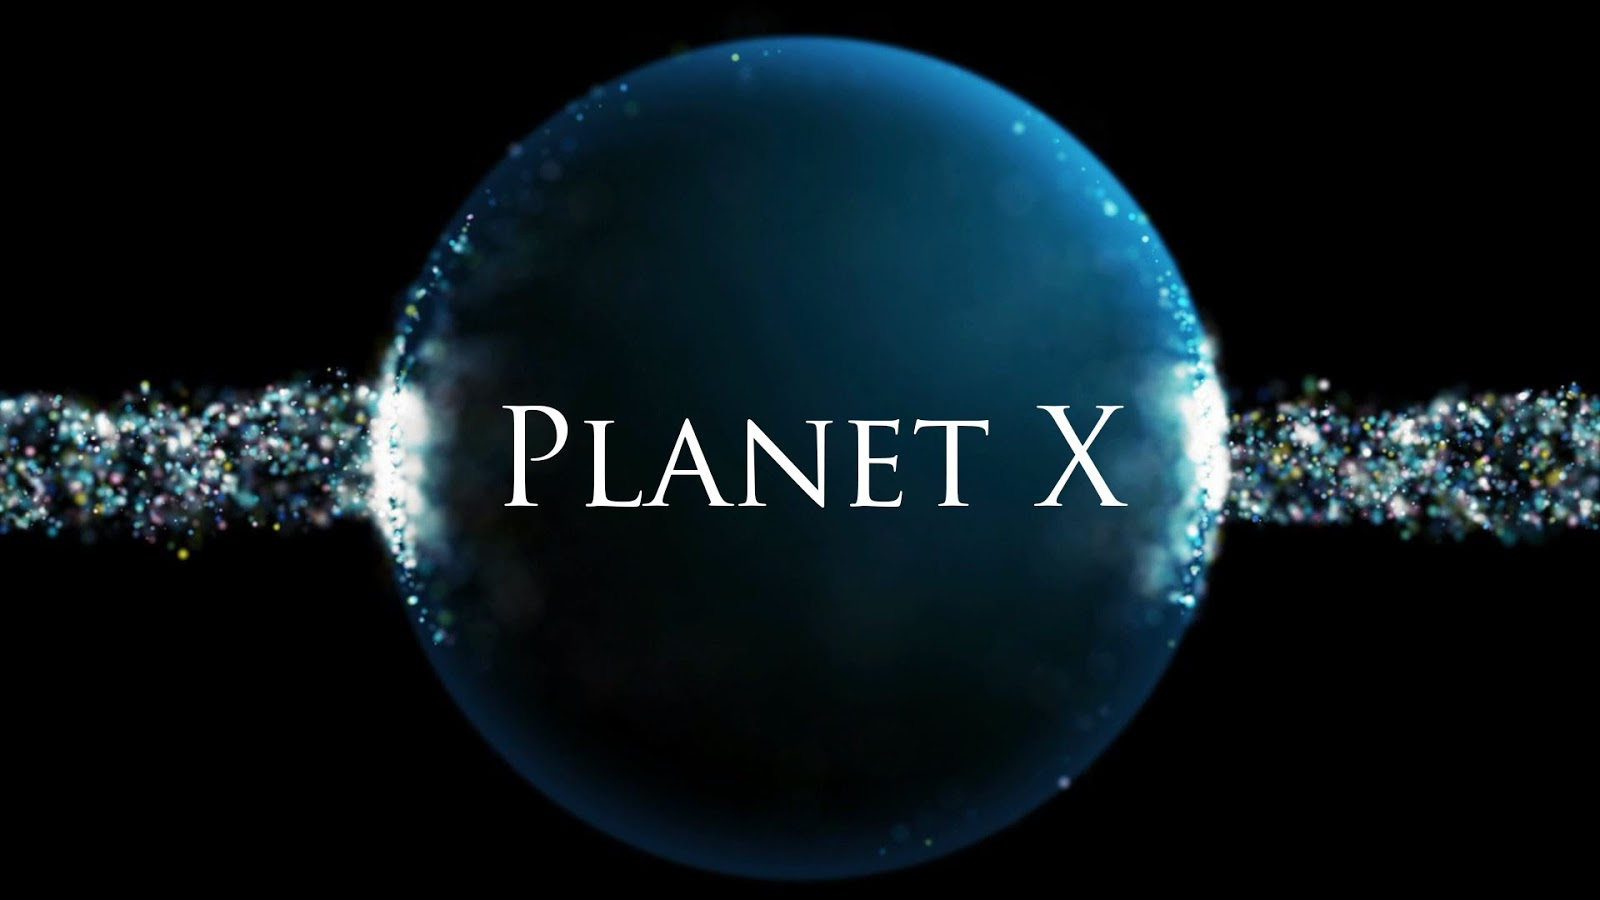 planet x Nibiru, planet x, nemesis, the destroyer, wormwood, hercolubus, comet typhon is nibiru real does it take nibiru 3,600 years to complete one orbital journey as you can imagine, the gravitational effects of a sizable planet moving close to the inner solar system would spell big trouble for planet earth.